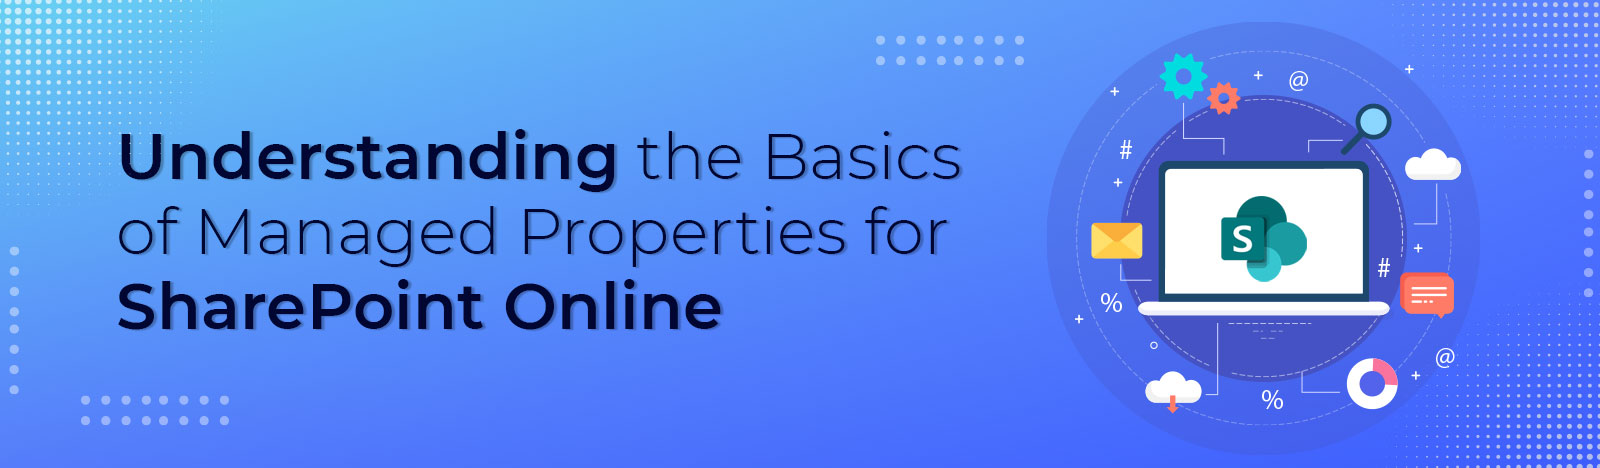 Understanding the Basics of Managed Properties for SharePoint Online